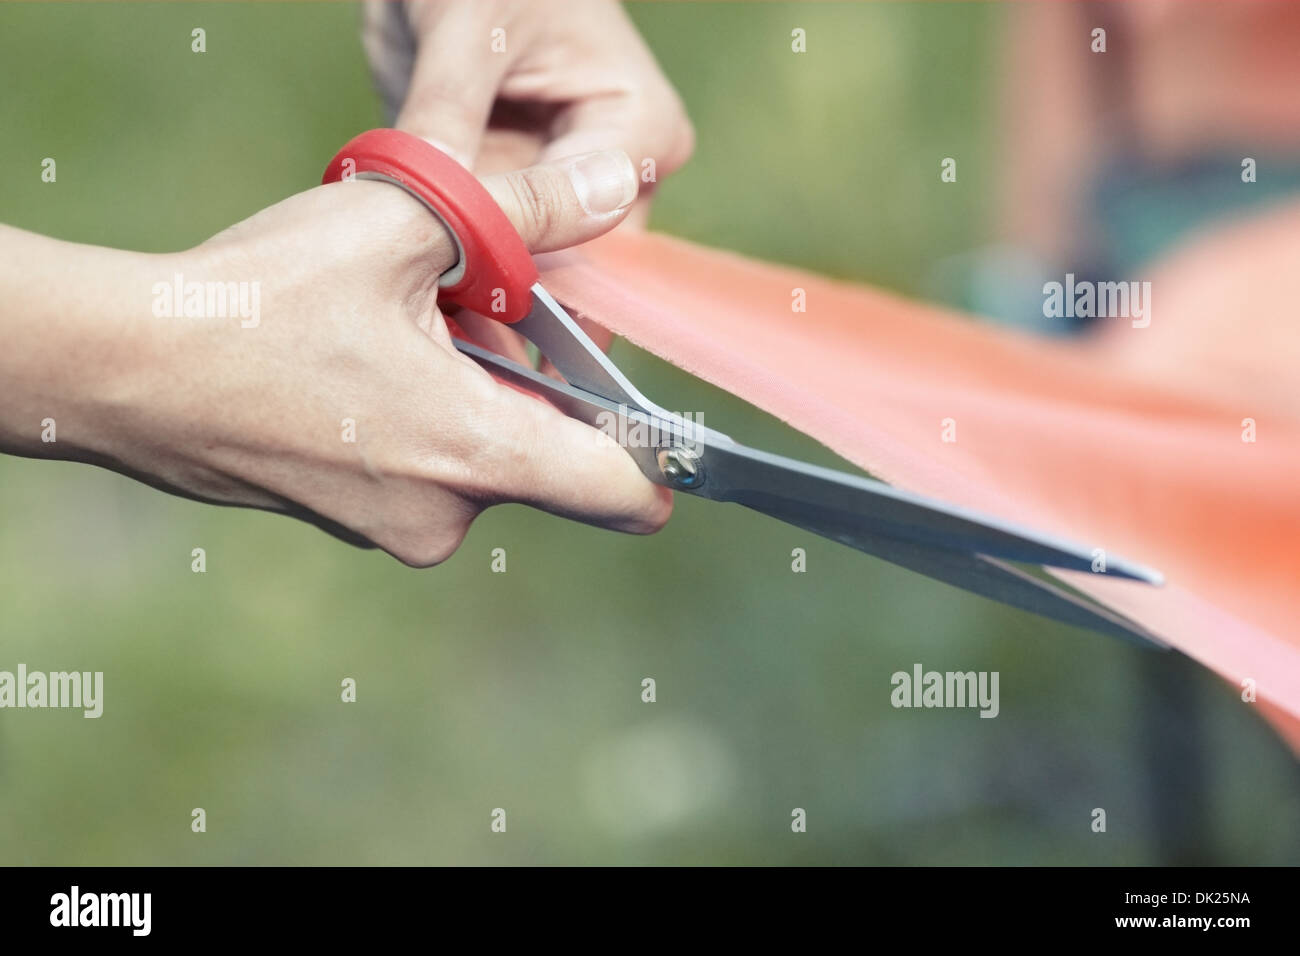 Hands of female tailor cutting red ribbon. Close-up view - Stock Image